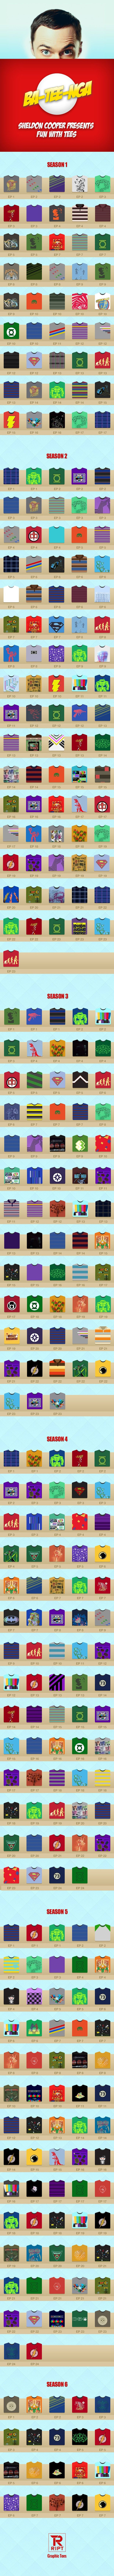 Every T-Shirt Sheldon Cooper Has Ever Worn! – Infographic